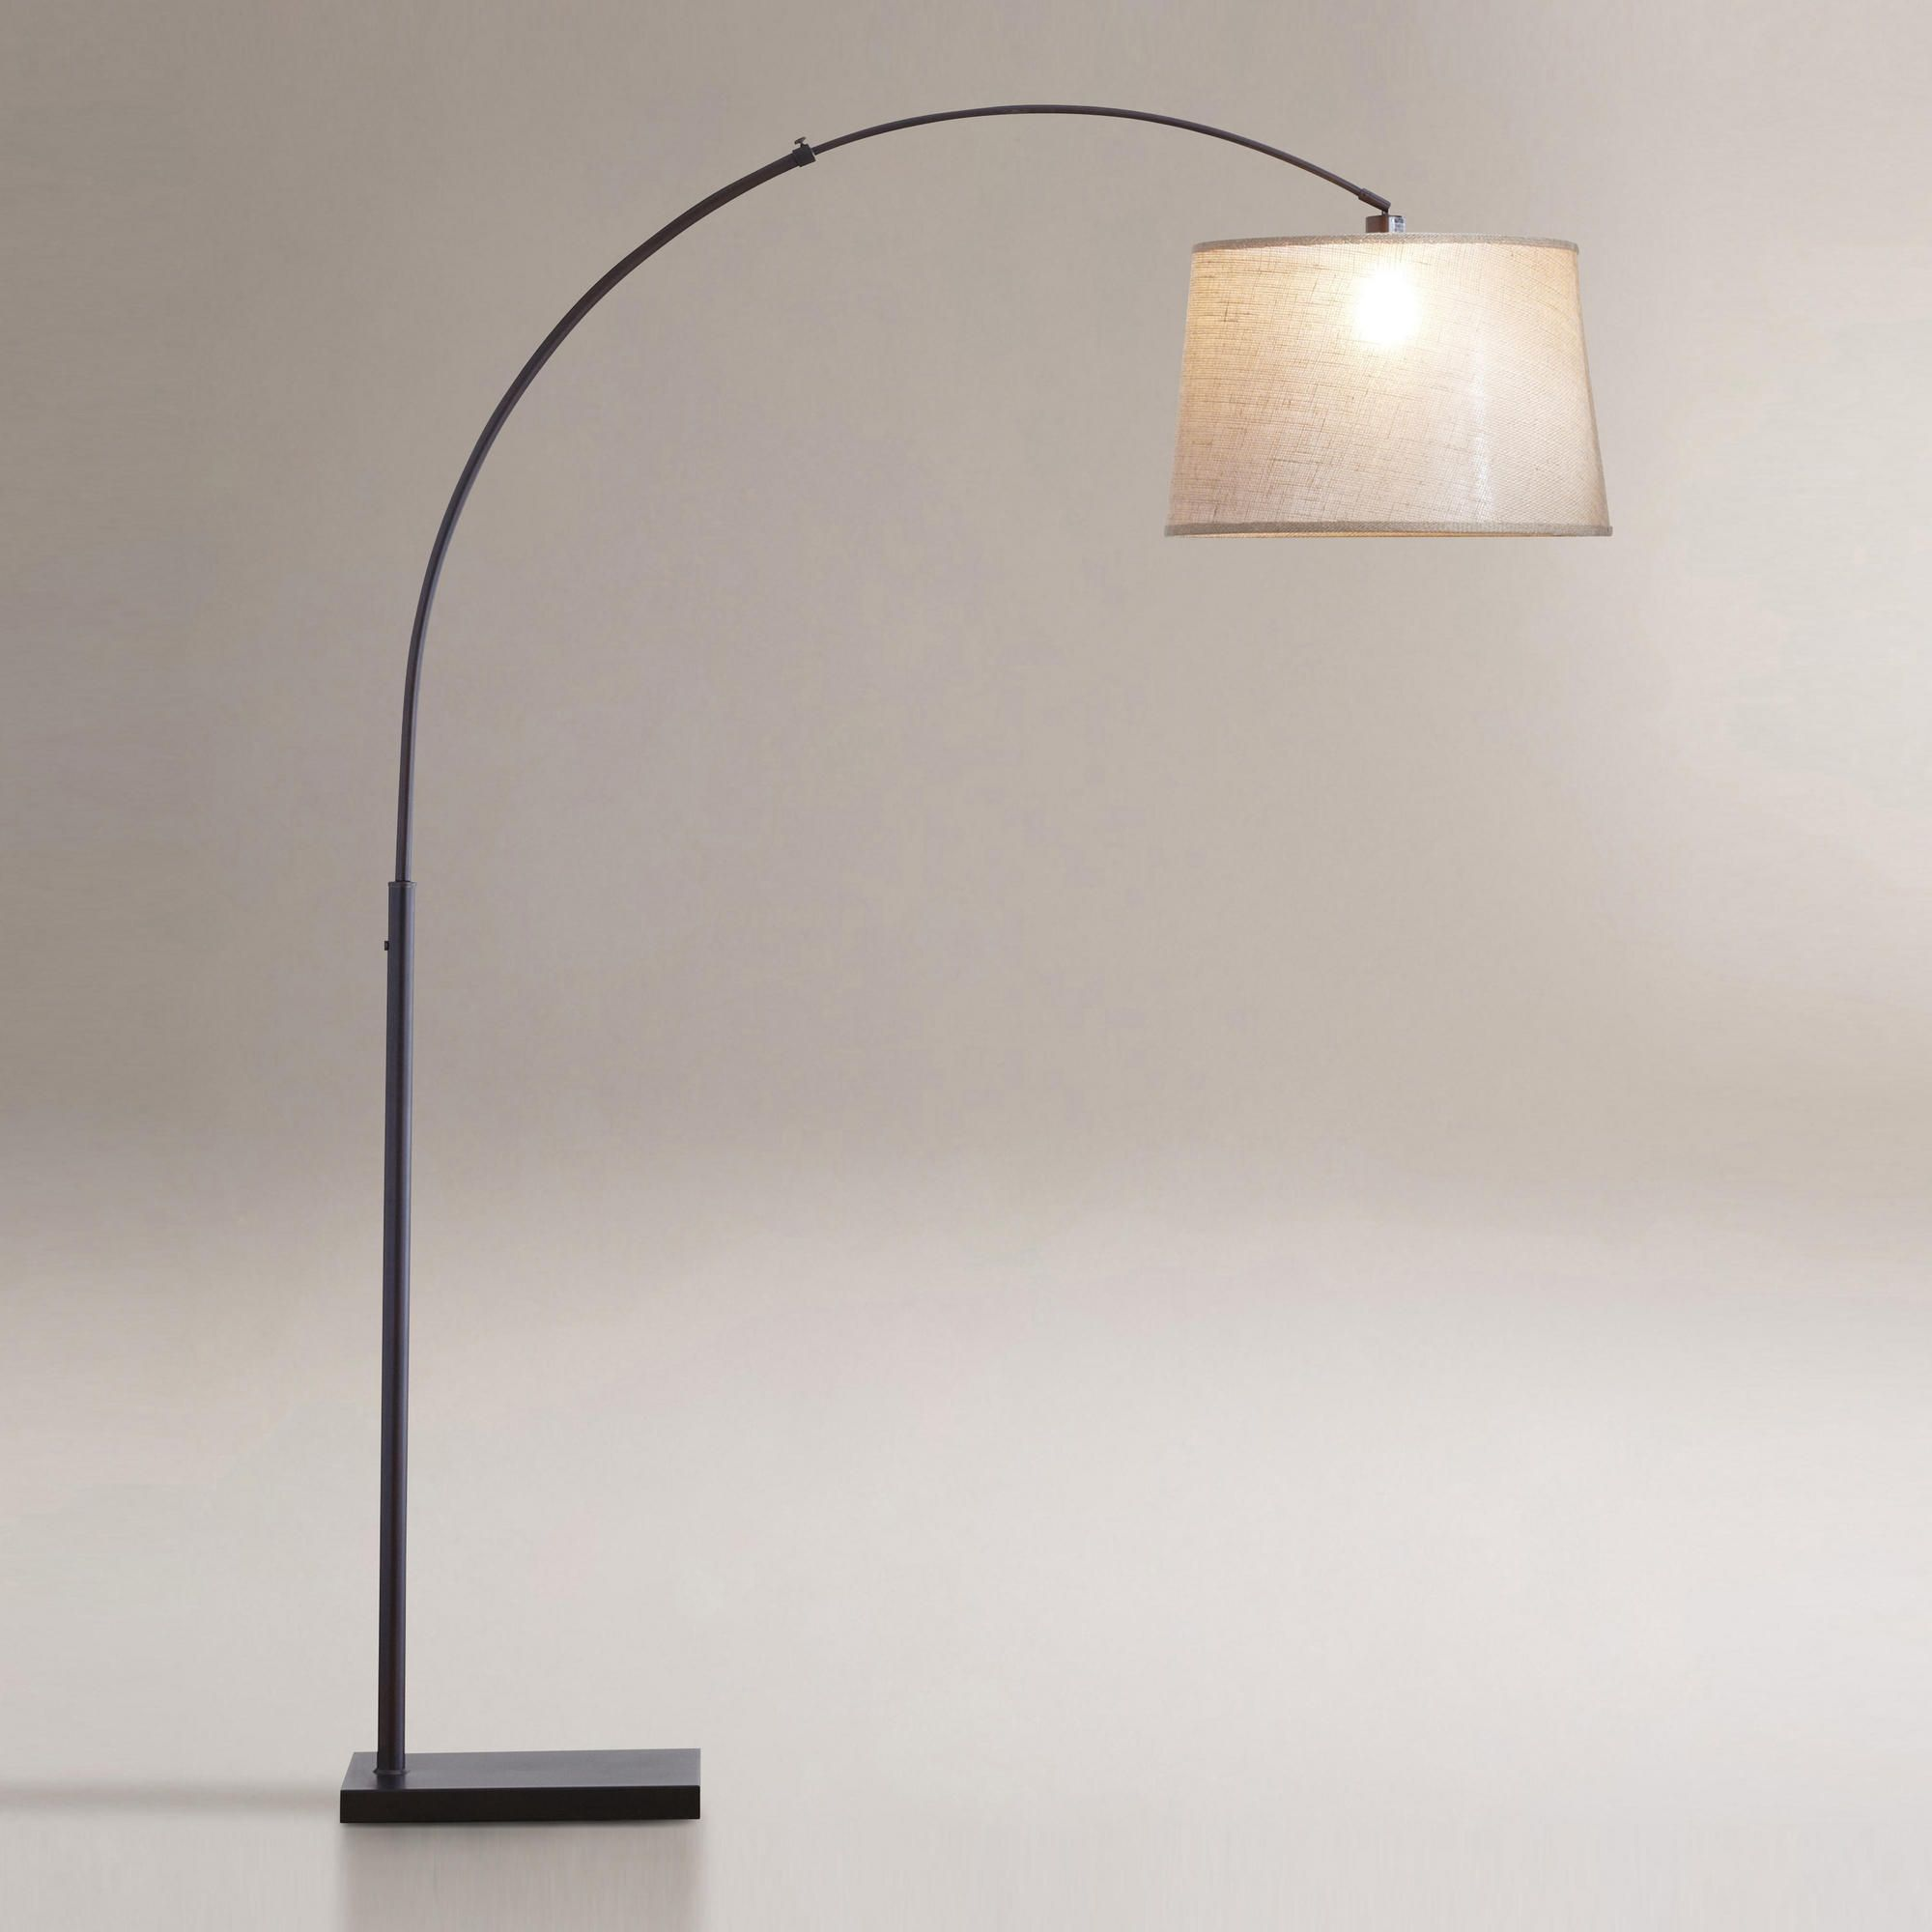 Floor Lamp Base Entrancing Large Shade Arc Floor Lamp  Httpafshowcaseprop  Pinterest Design Ideas